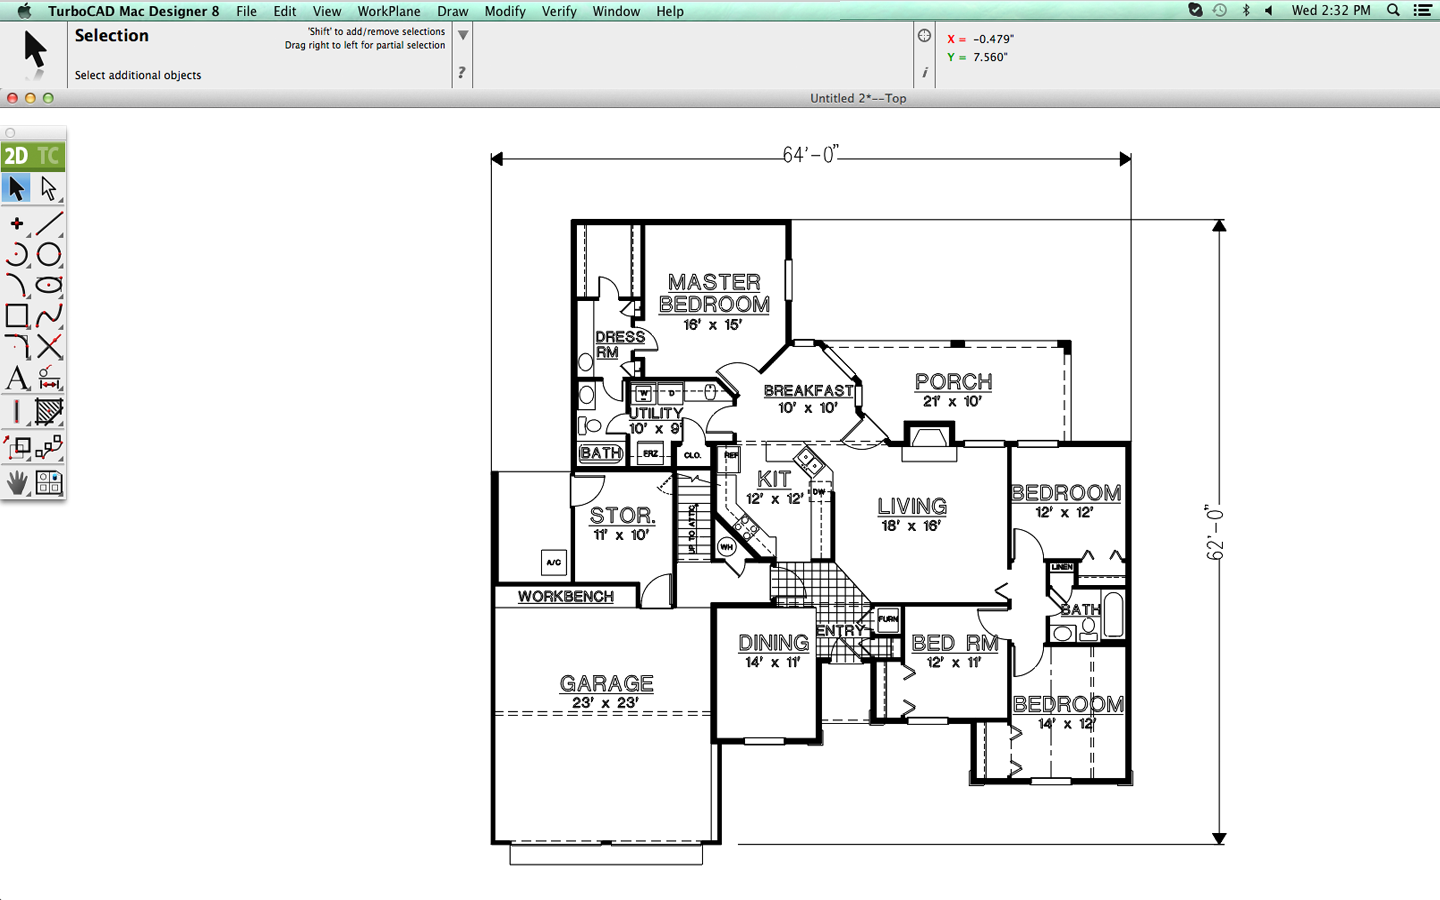 Home Designer(r) Software Part - 46: Mechanical Design / 3D Modeling